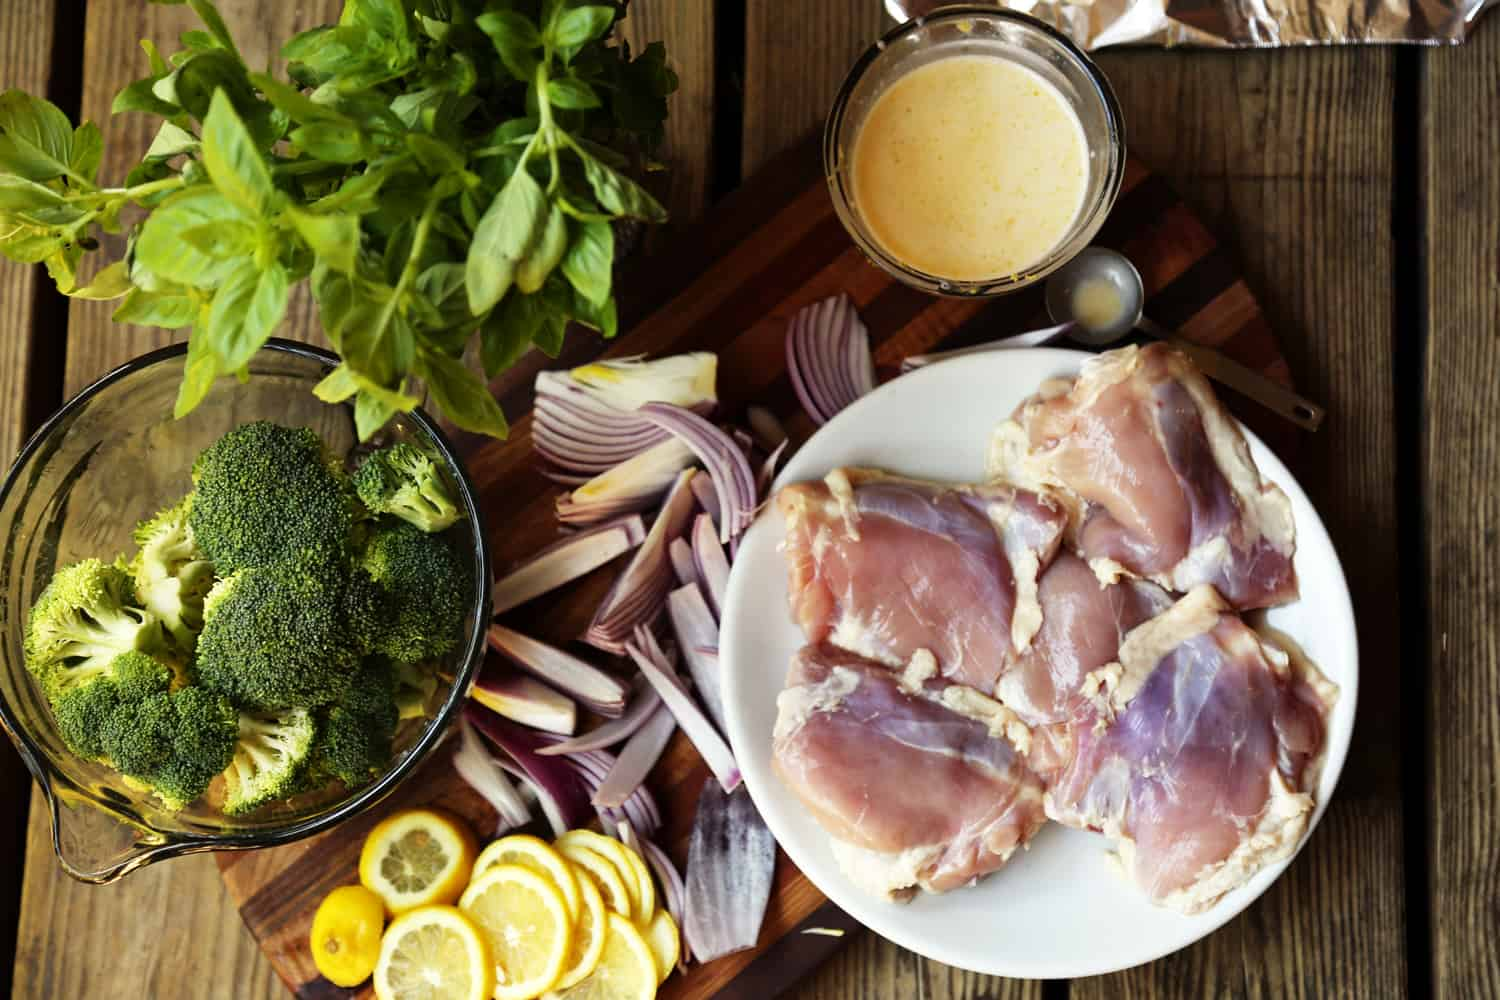 Lemon Chicken and Brocolli Foil Pack Dinner recipe | ONEarmedMAMA.com